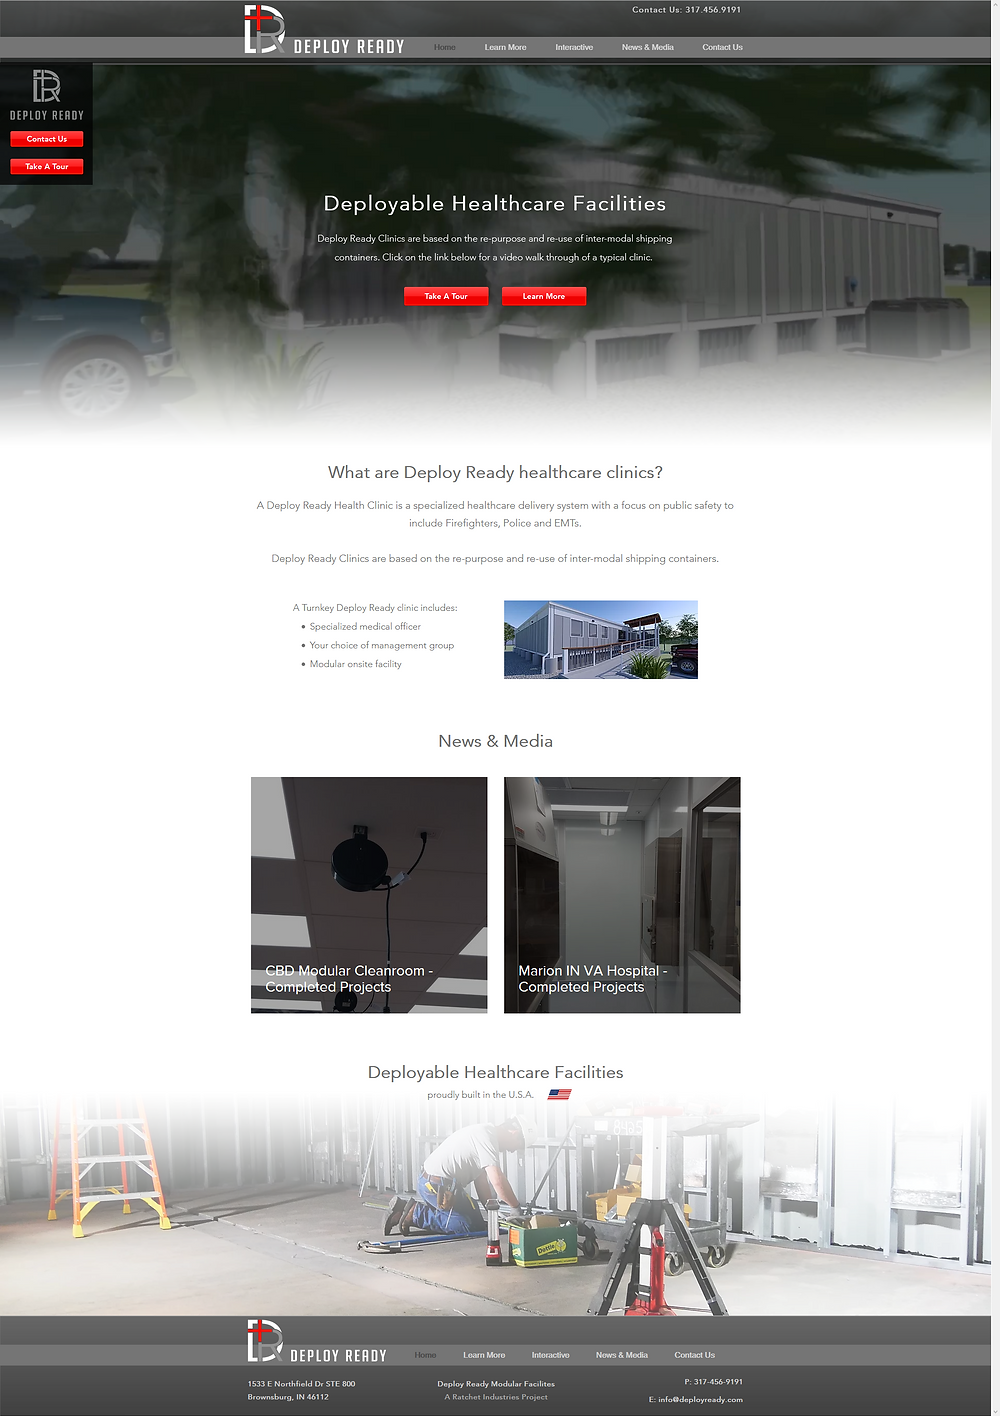 Deploy Ready Website